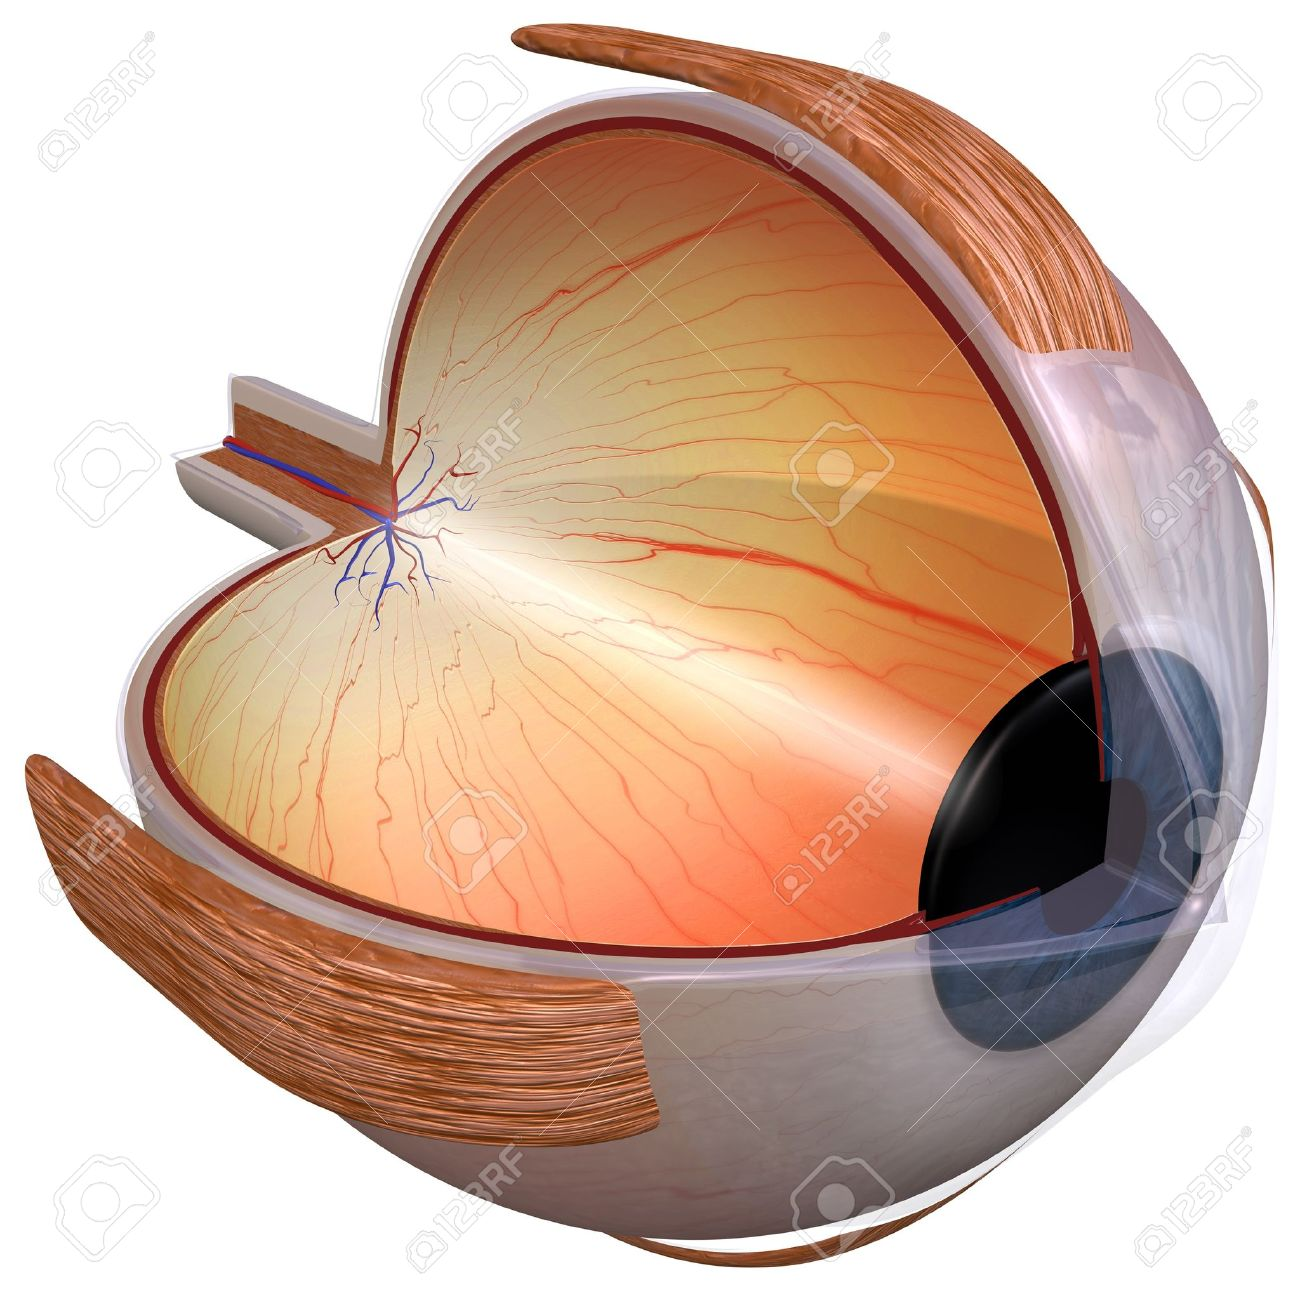 Human Eye Diagram Three Quarter View Stock Photo Picture And 13692580